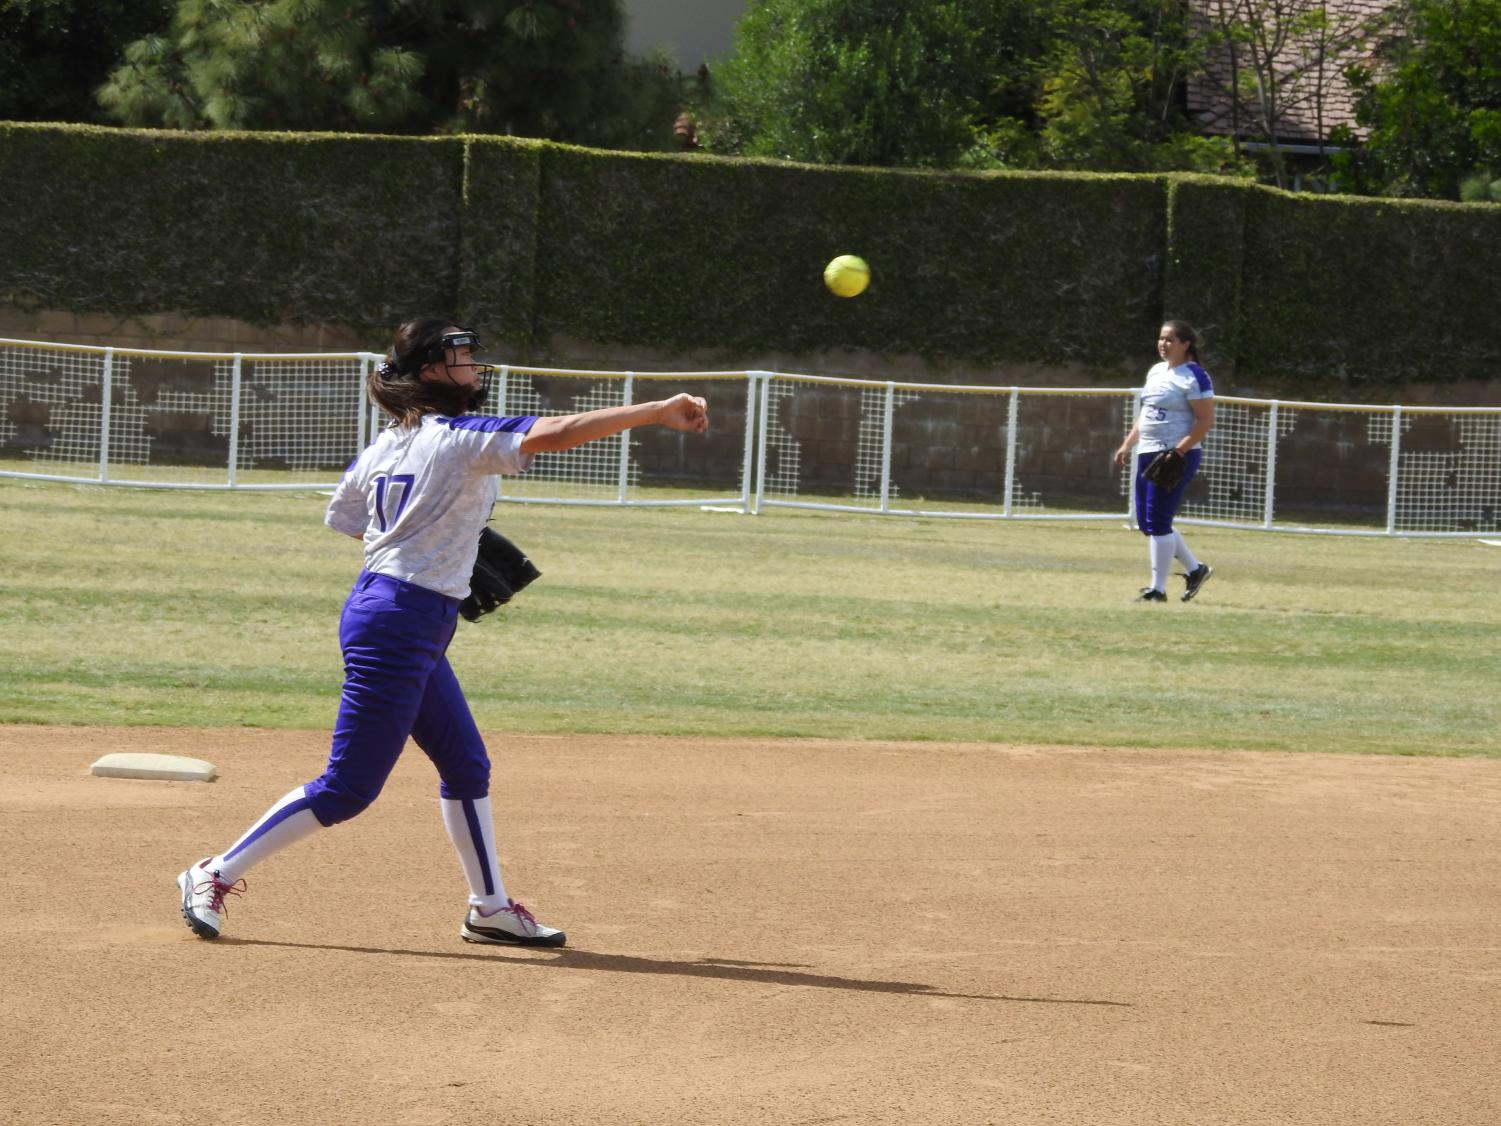 Junior Michele Chung and senior Josie Euyoque-Garcia warm up. The photo was taken on the Archer softball field last year before construction began. Image courtesy of Garcia-Euyoque.